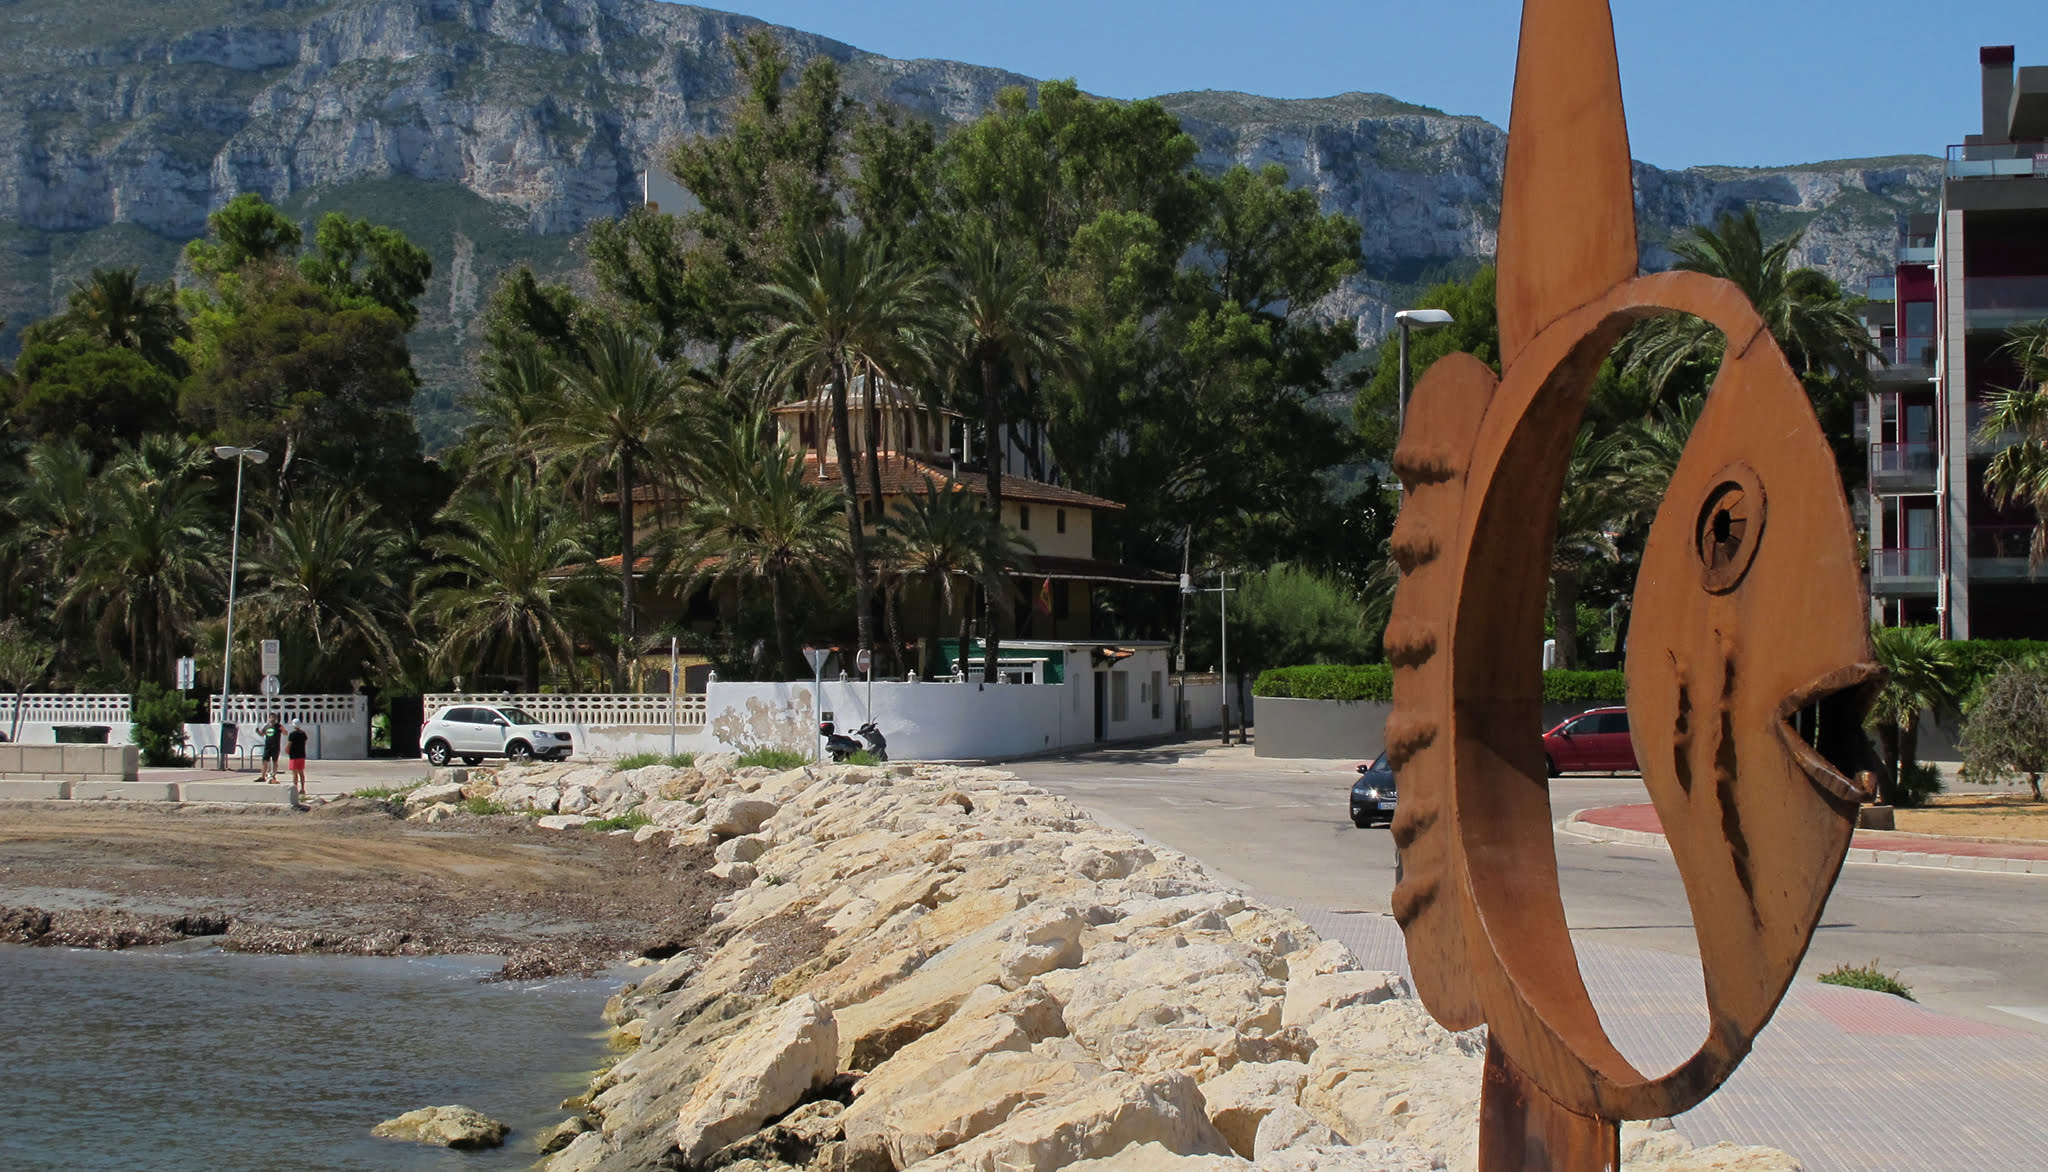 Sculpture by Toni Marí at the entrance to Marina de Dénia